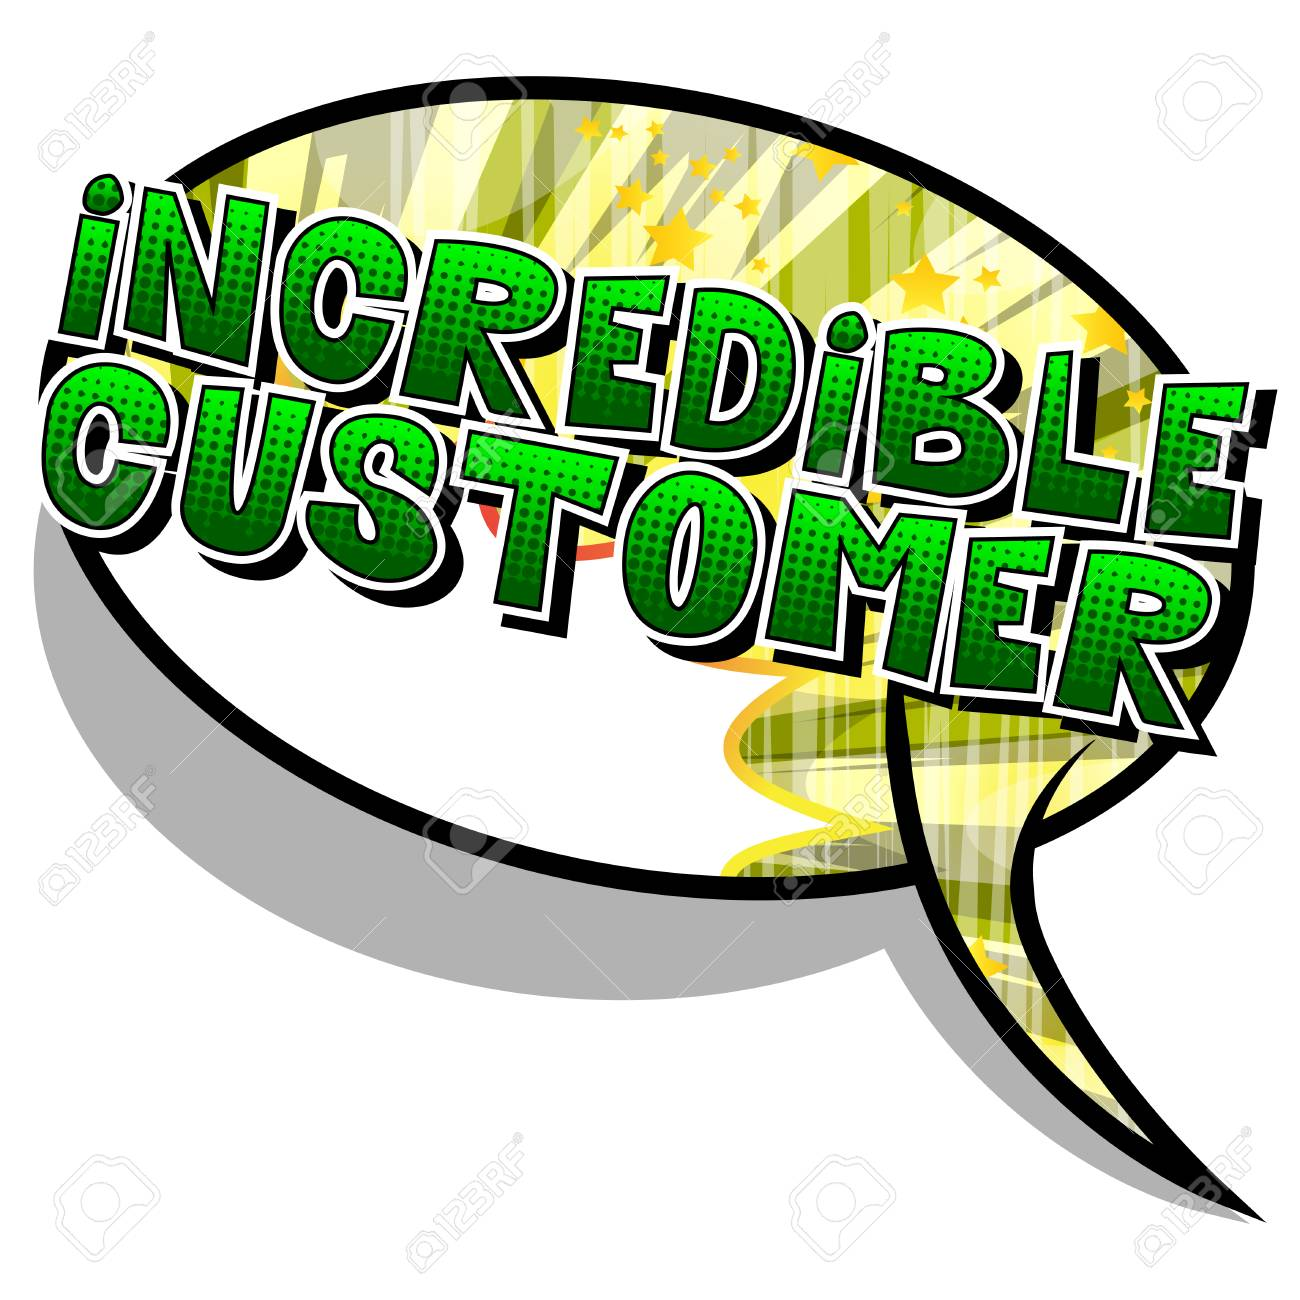 Incredible Customer - Comic book style word on abstract background. - 105596831